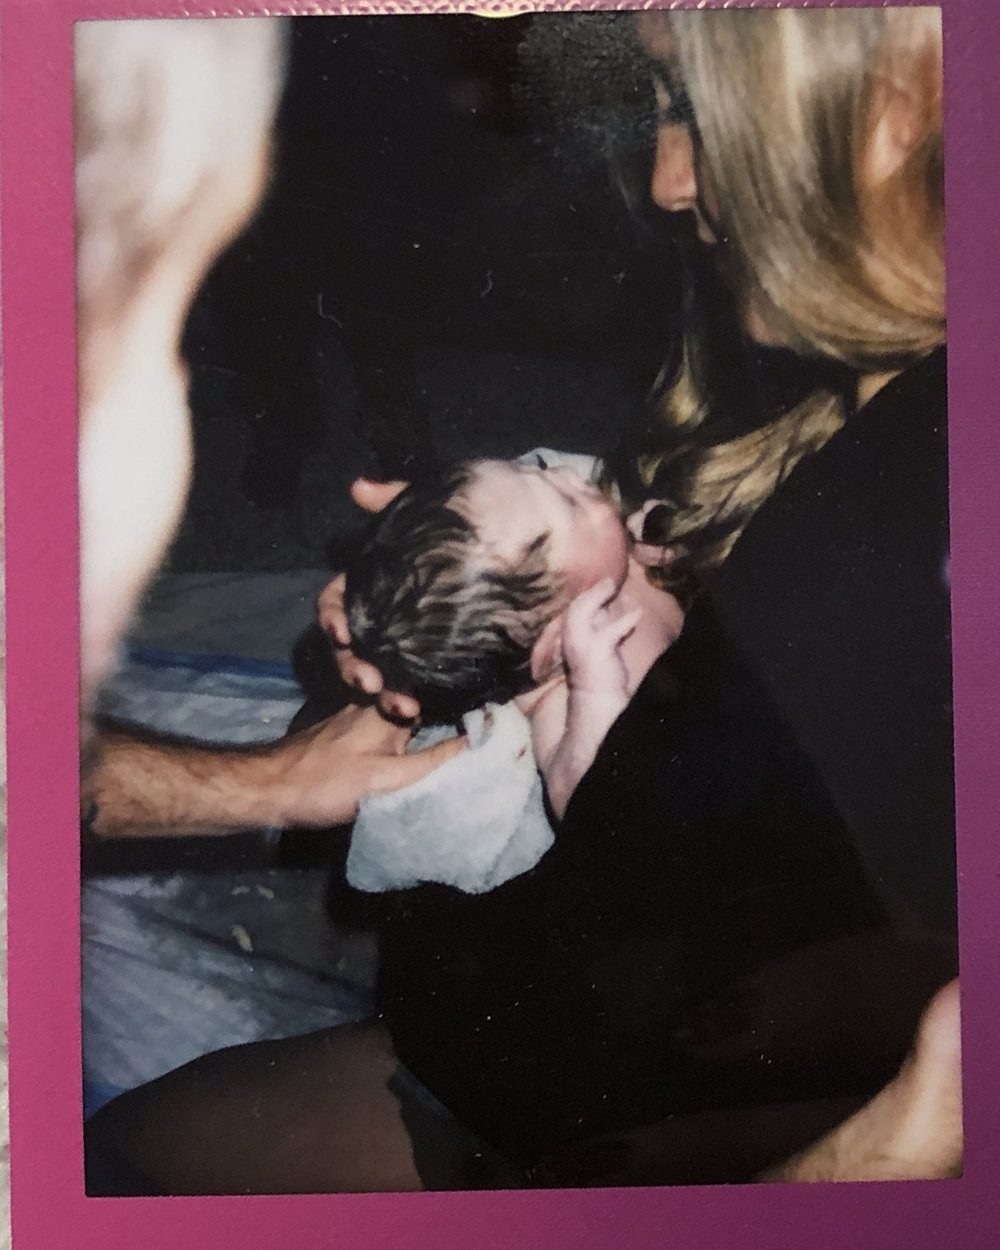 Aiden's polaroid shot from the birth that he was taking in the photo from above!